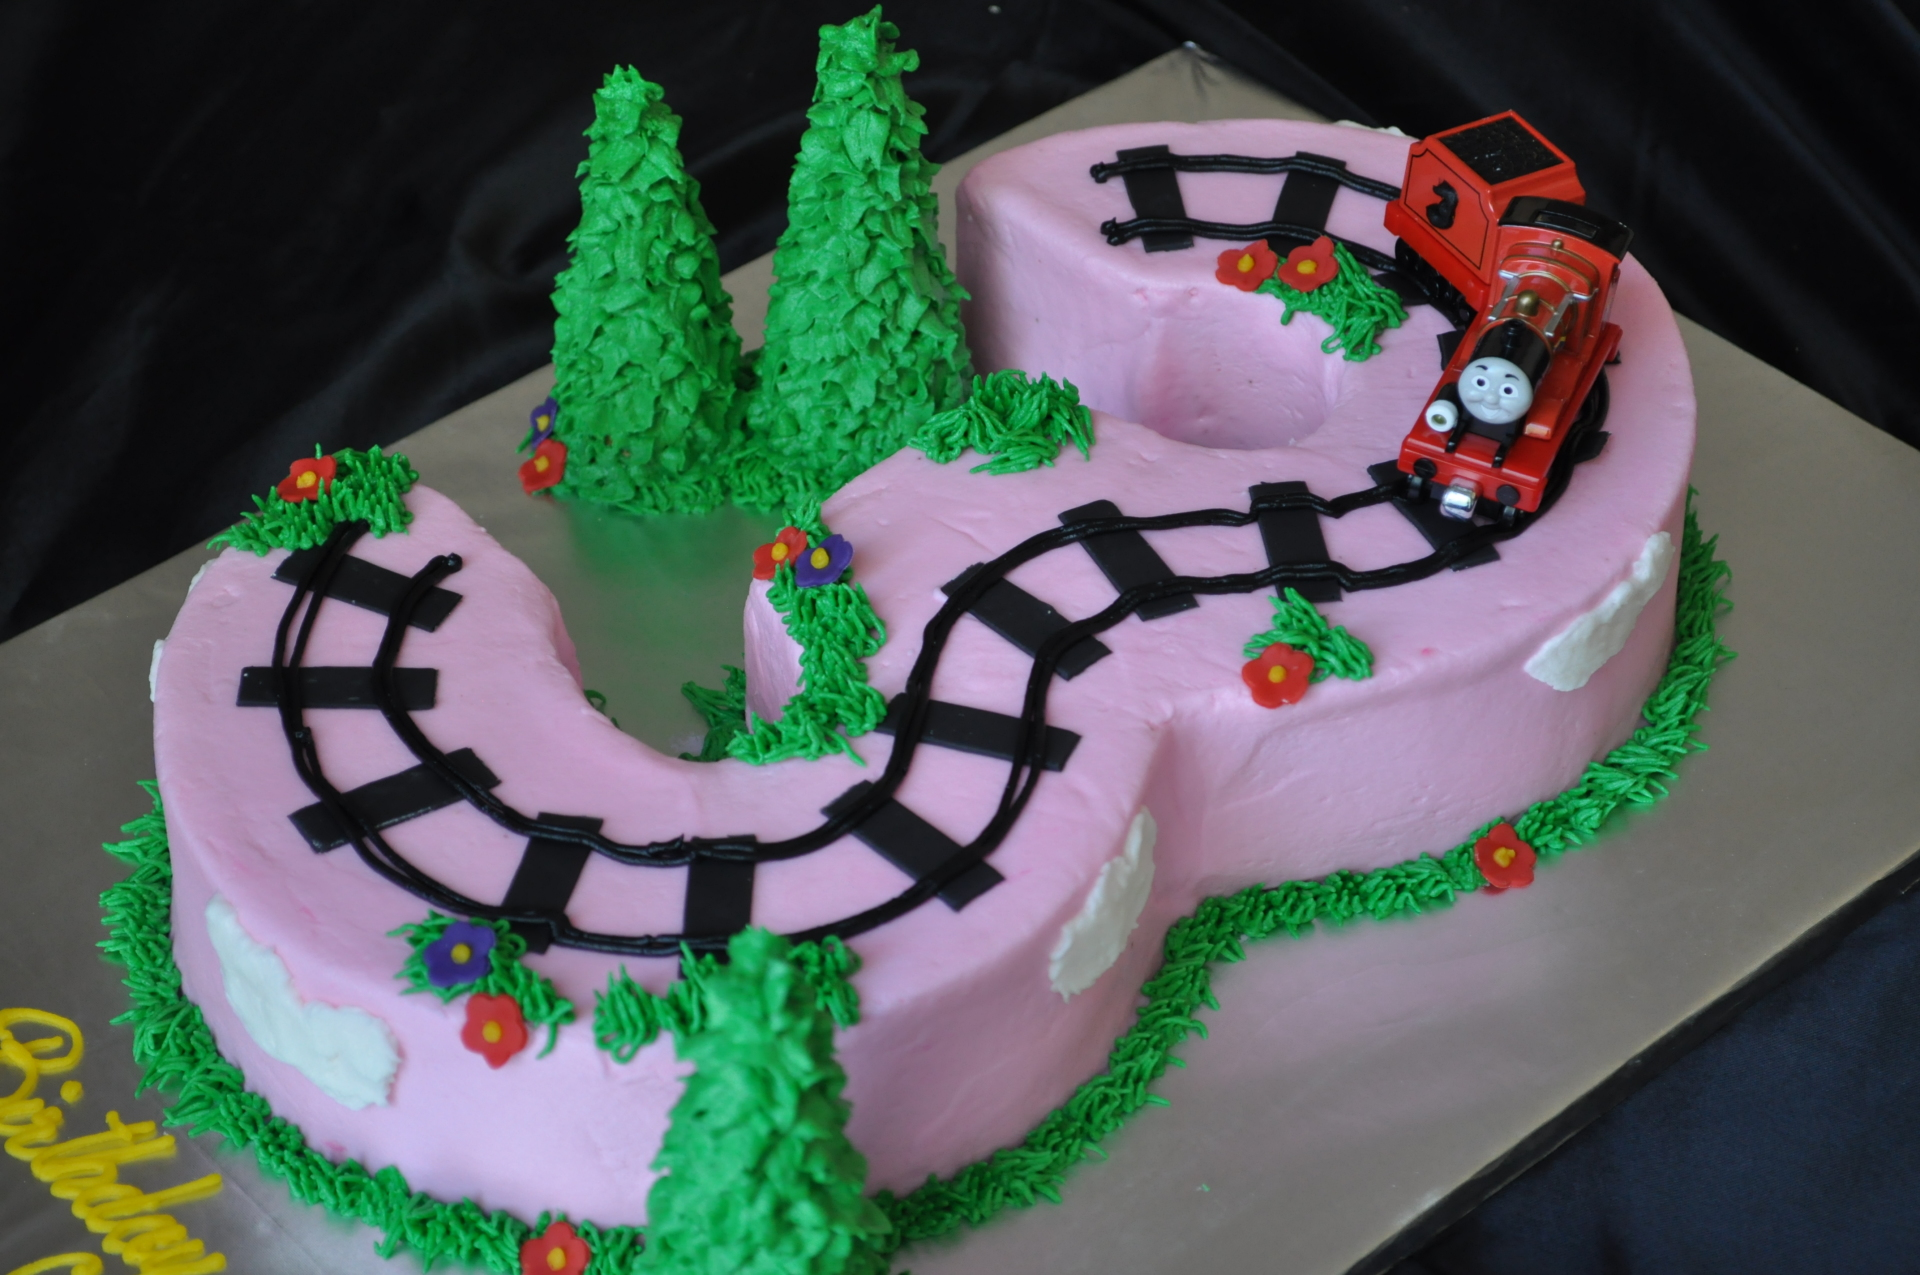 Thomas train cake ,pink number 3 cake